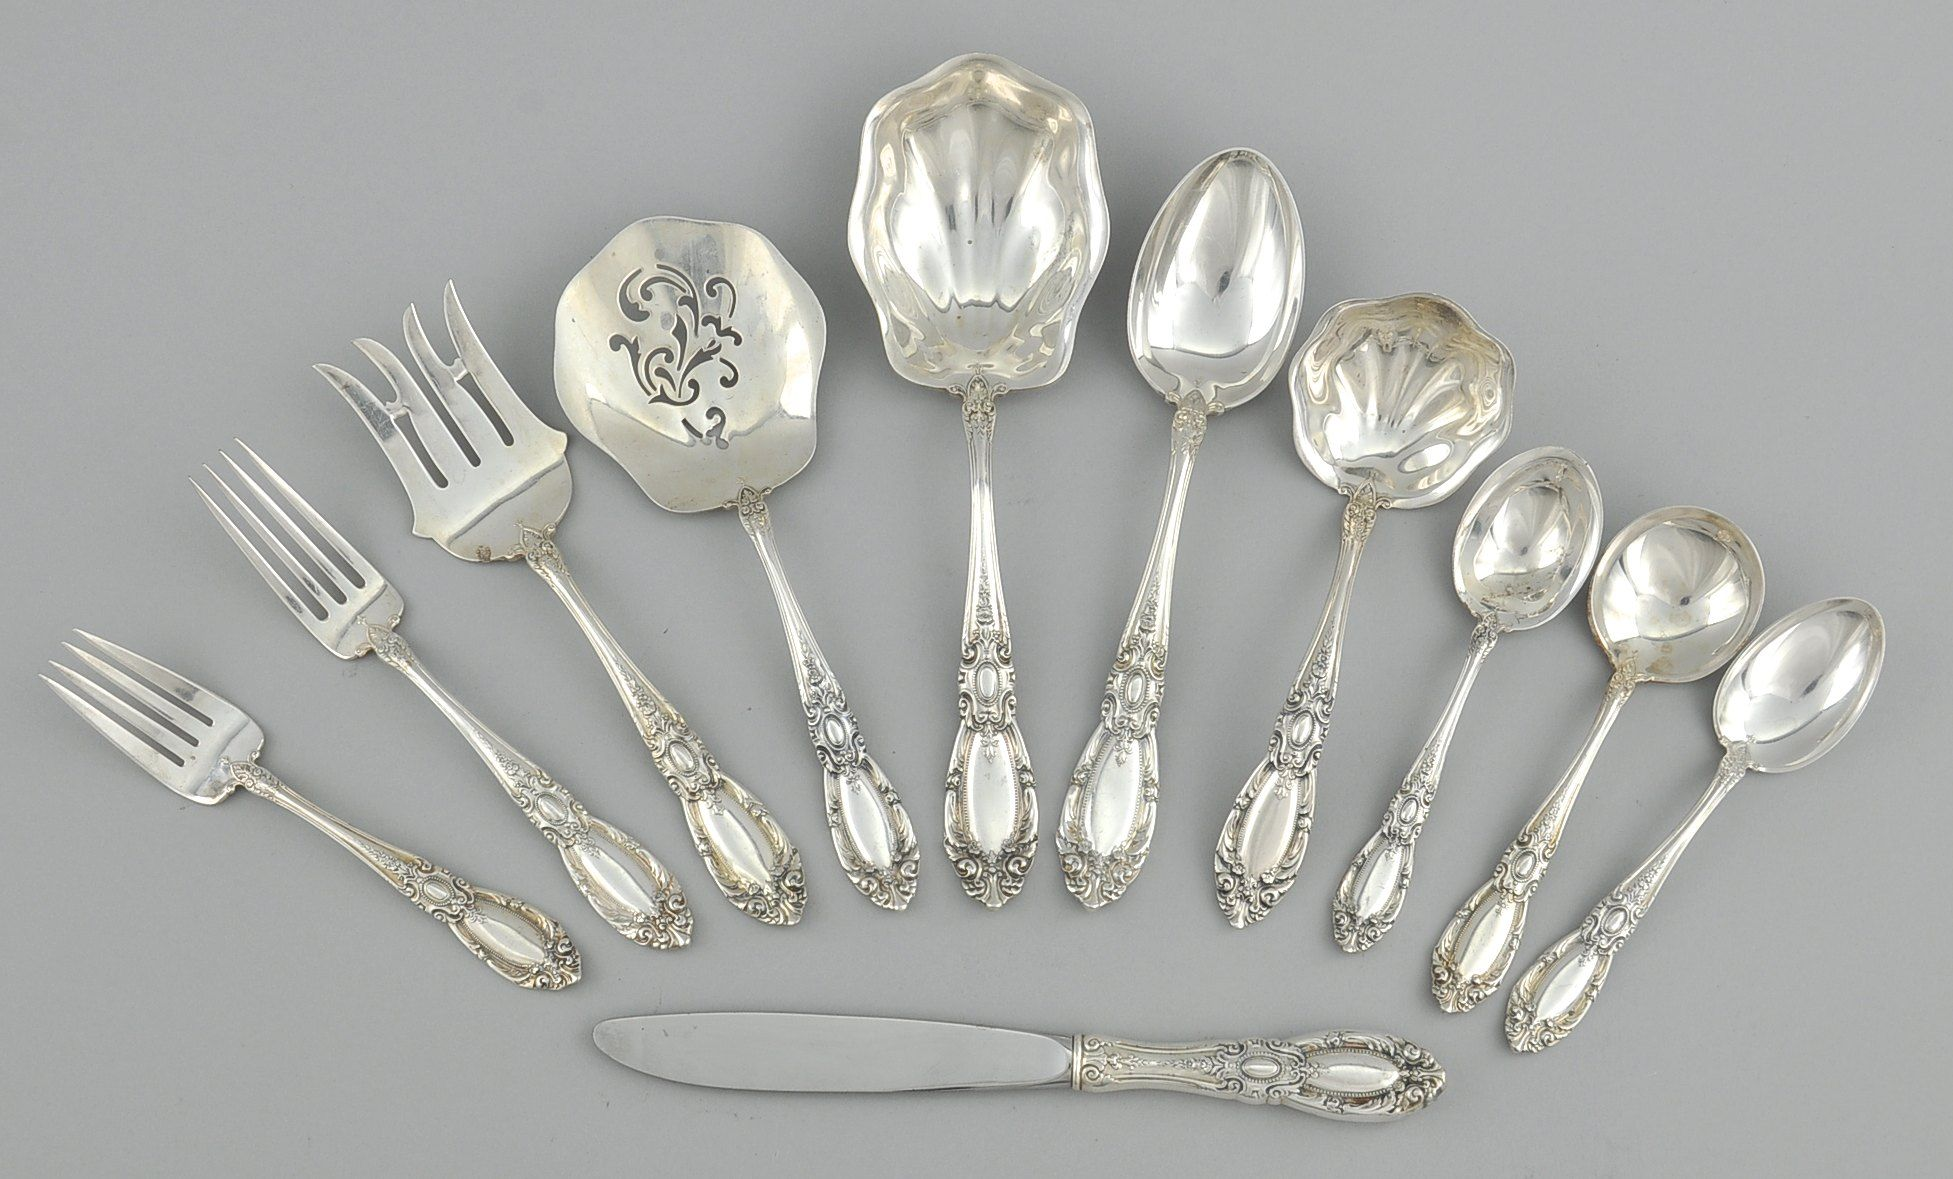 Aspire Auctions Fine Art Antiques Jewelry And Other Luxury Items In 2020 Sterling Silverware Antique Silver Vintage Silver